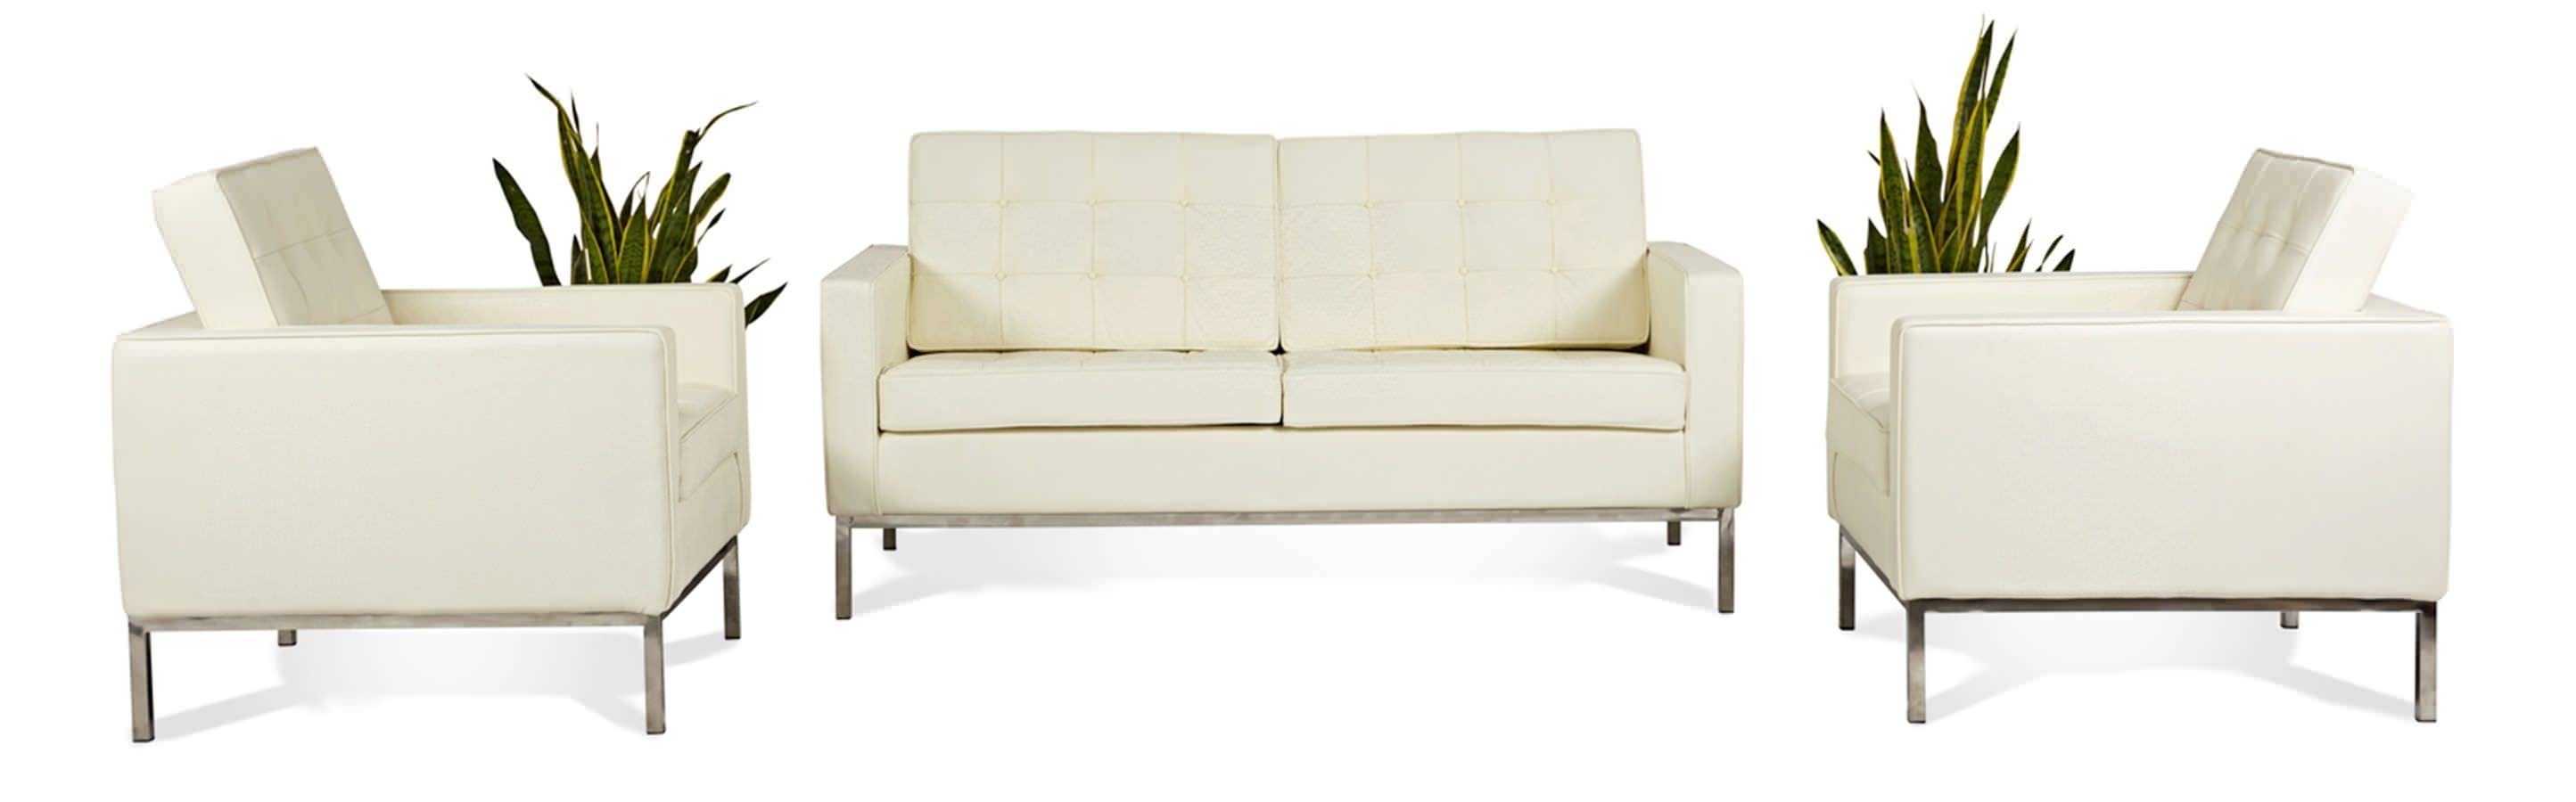 Florence Knoll Style Loveseat 2 Seater Small Sofa Mid Century Modern with regard to Florence Knoll Style Sofas (Image 8 of 25)